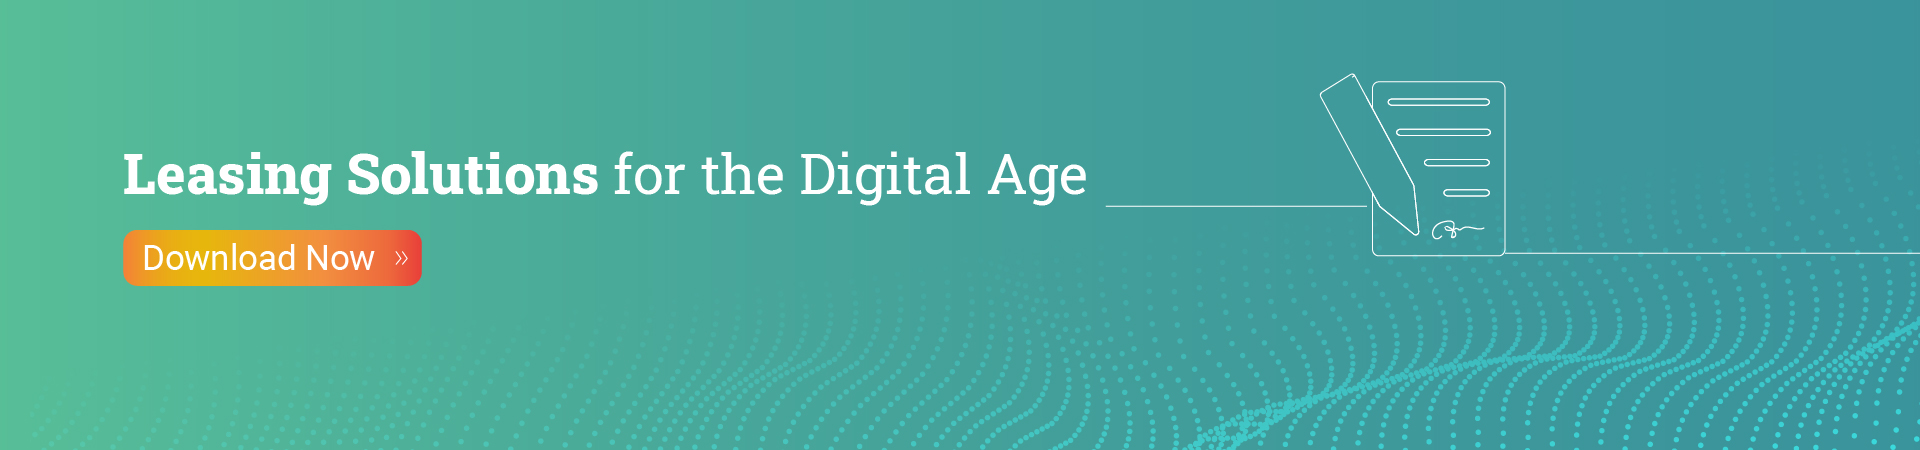 Leasing Solutions for the Digital Age Banner